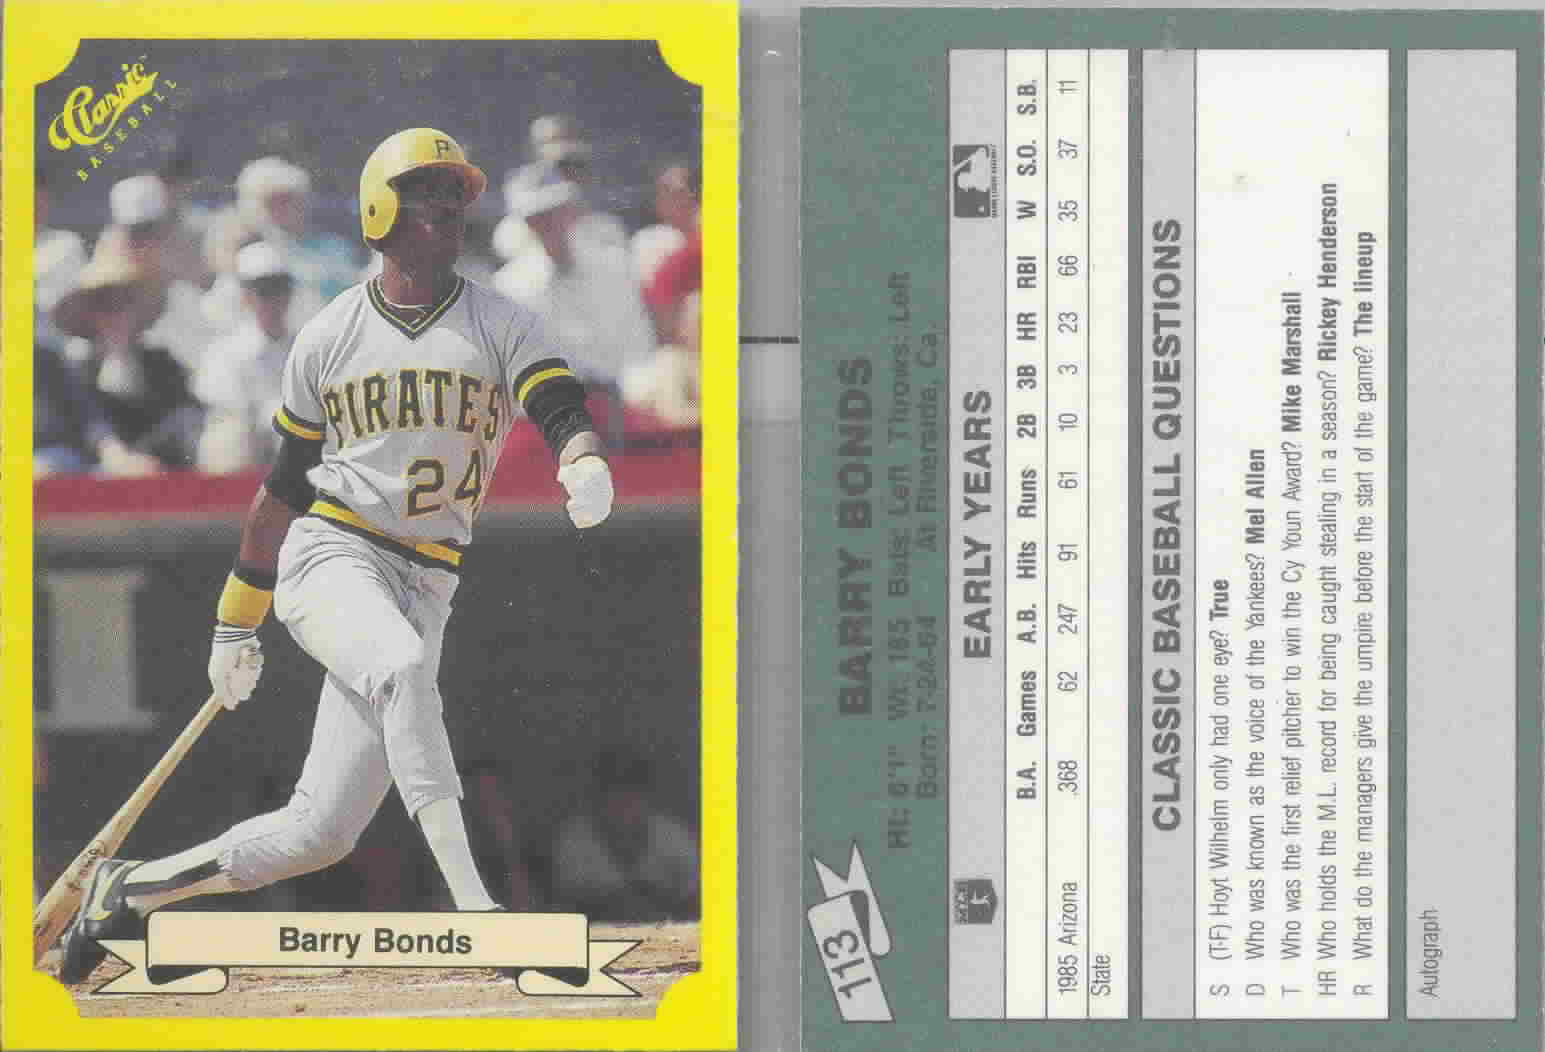 1987 Classic Update Yellow/Green Backs Baseball Cards